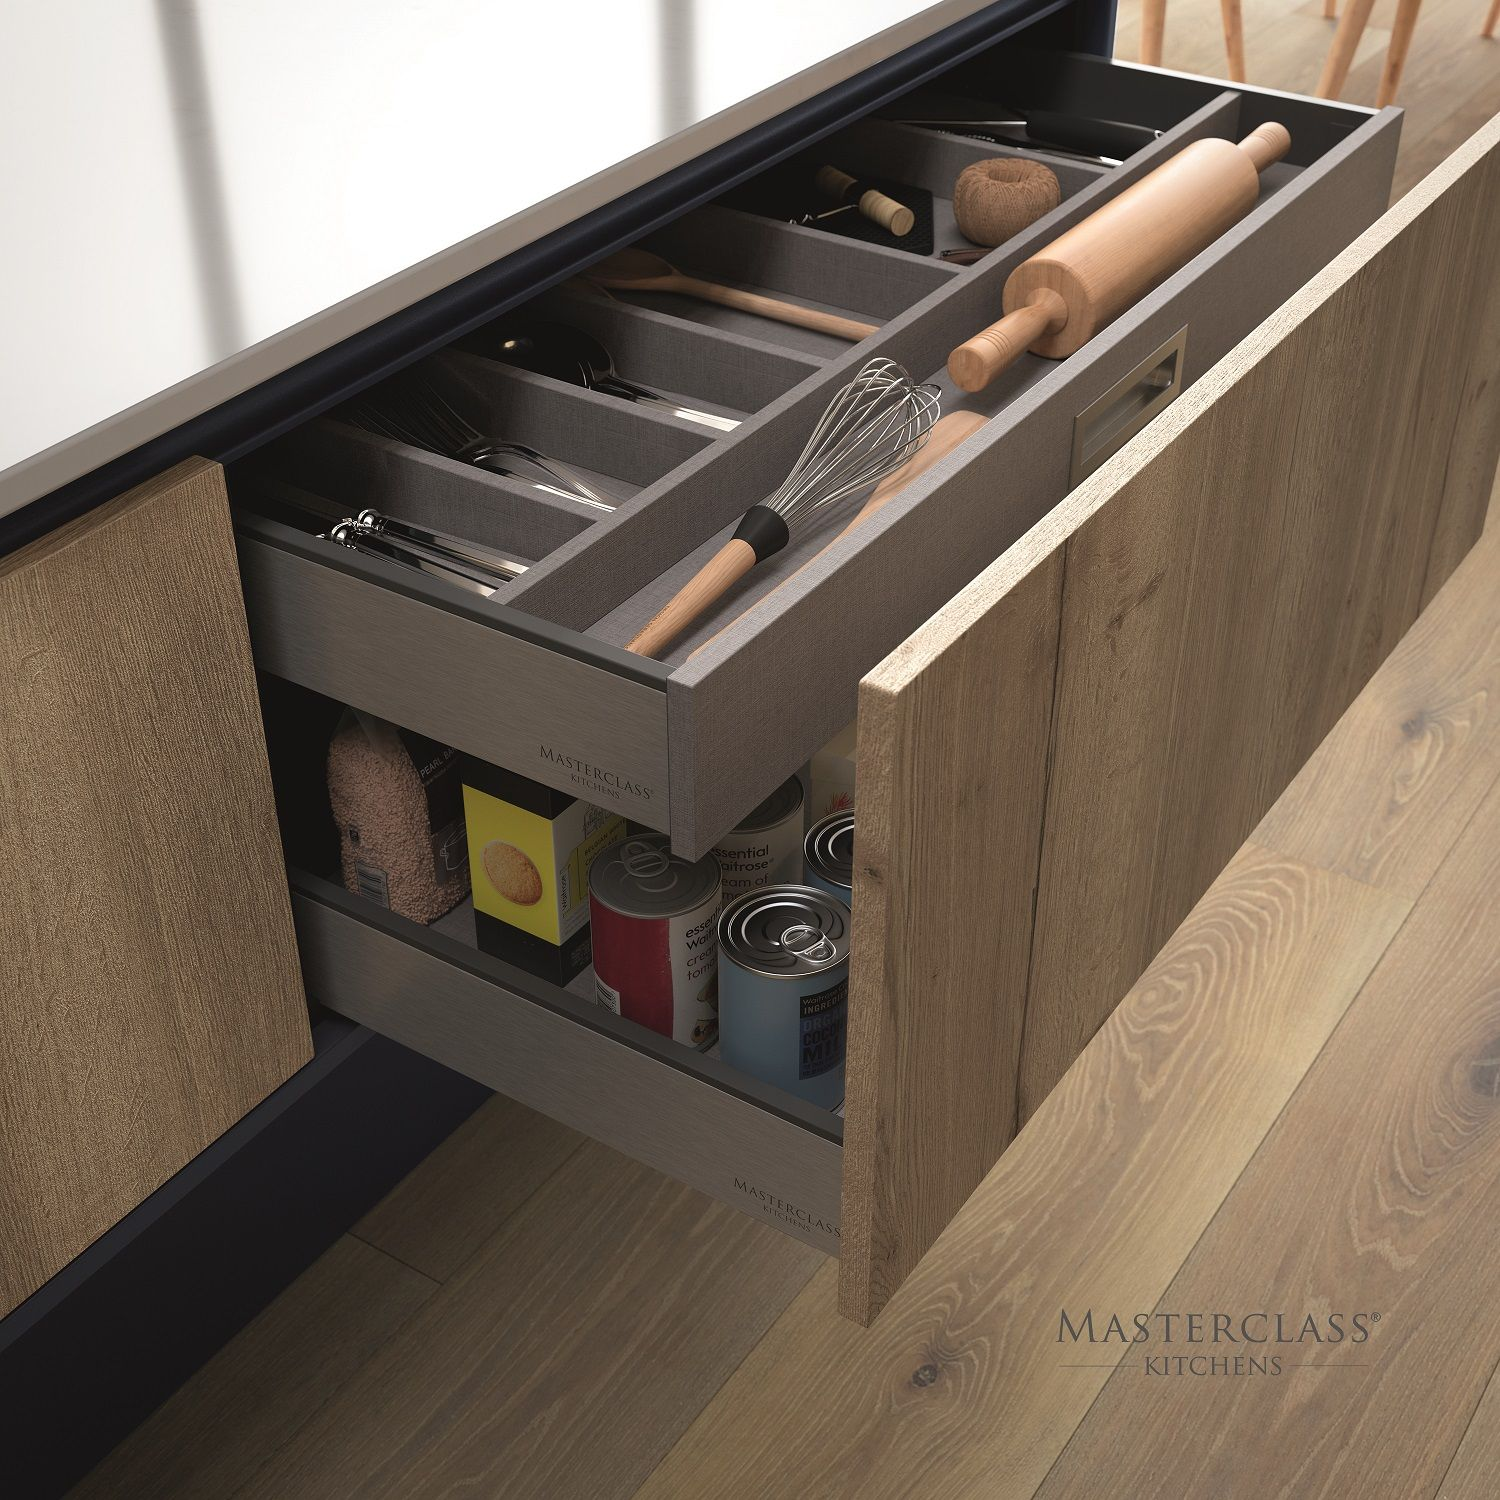 Deep Drawers Allow For Hidden Cutlery Drawers To Maintain Design Symmetry In Your Kitchen Kitchen Cabinet Layout Kitchen Storage Solutions Clean Kitchen Design